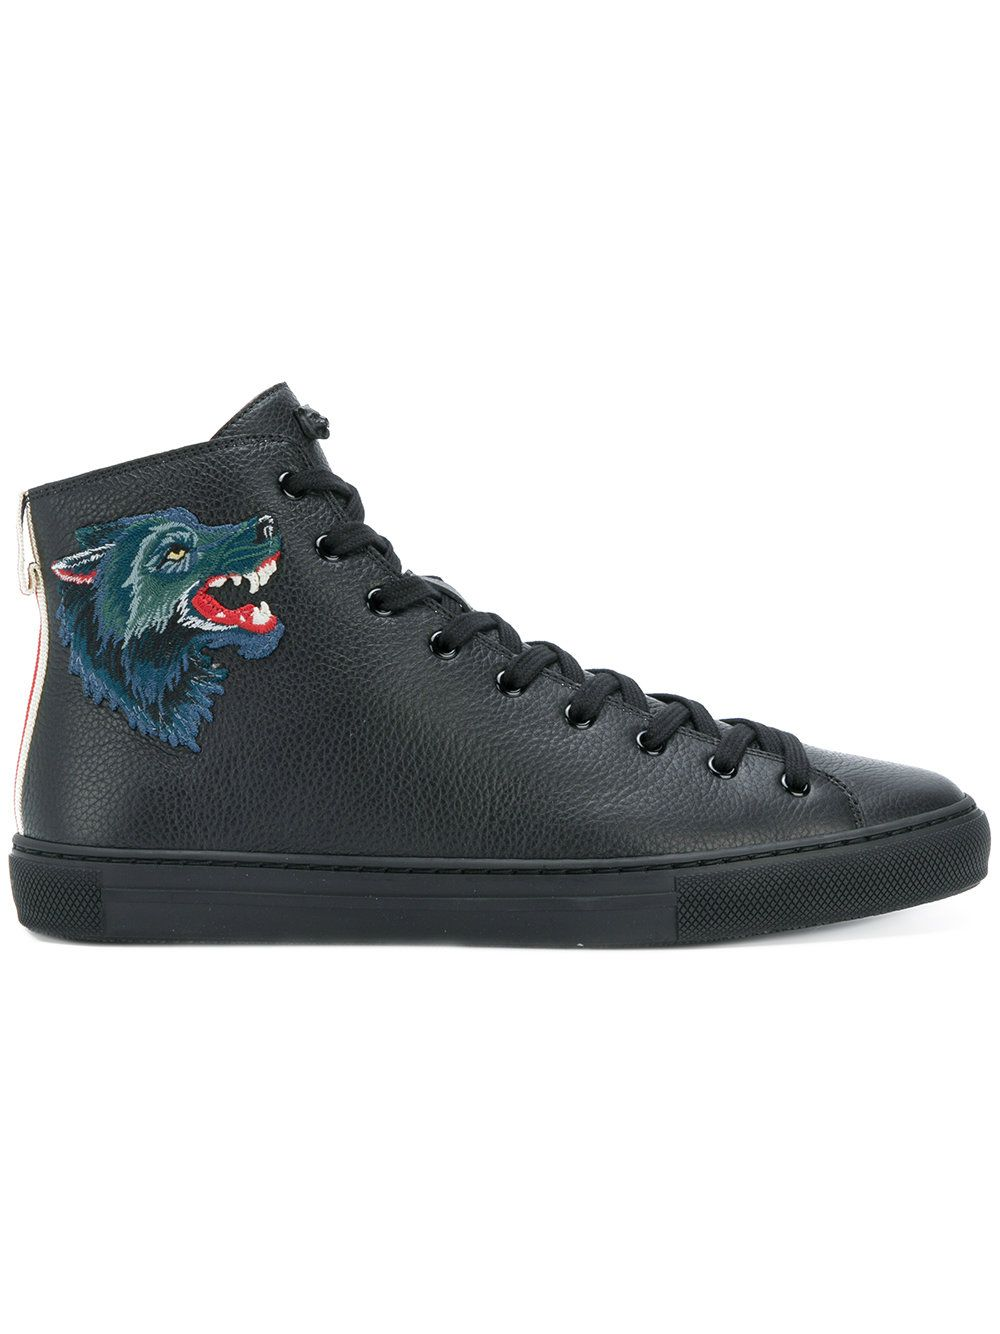 Major Appliquéd Full-grain Leather High-top Sneakers Gucci